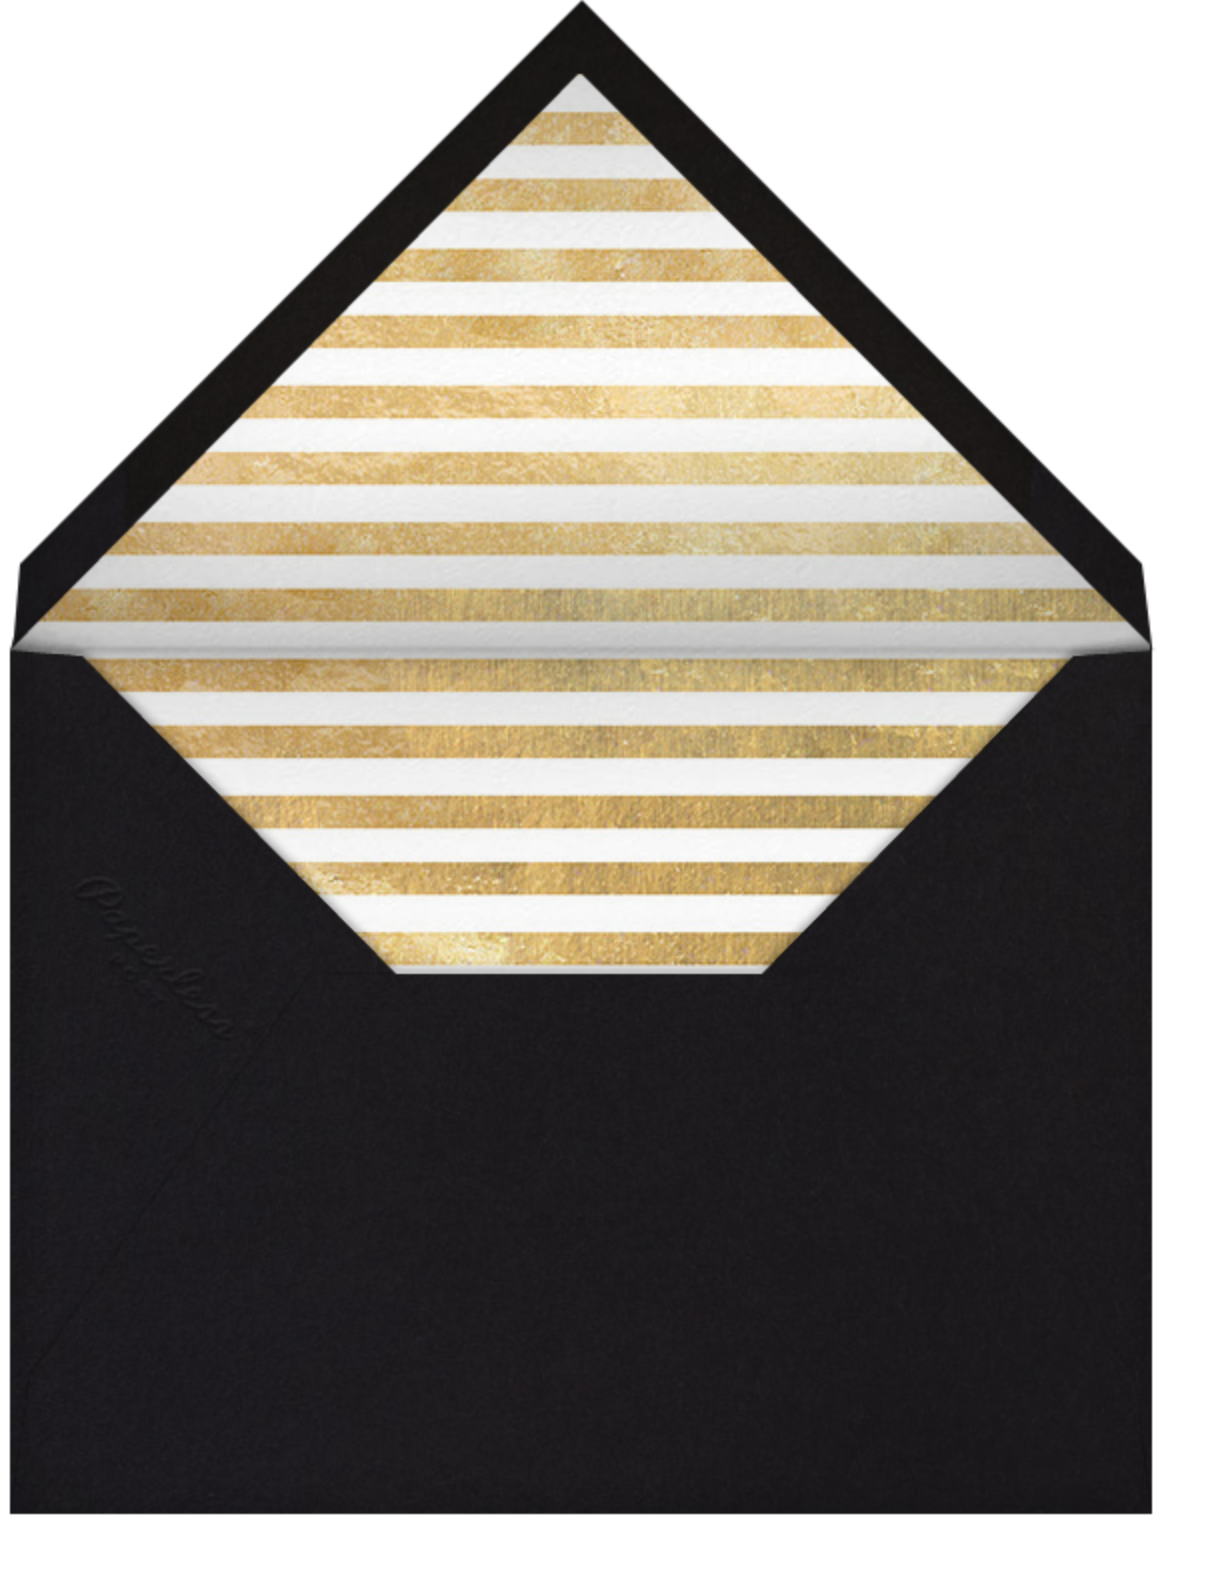 Lanterns - Gold - Paperless Post - Professional events - envelope back